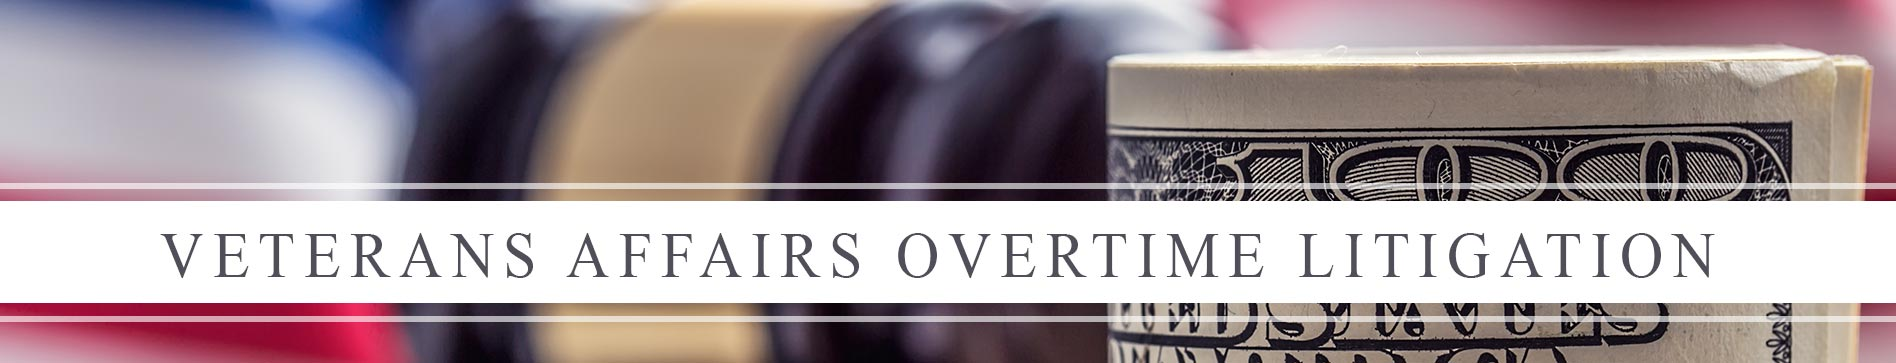 Veterans Affairs Overtime Litigation | Veterans Affairs Wage & Hourly Litigation